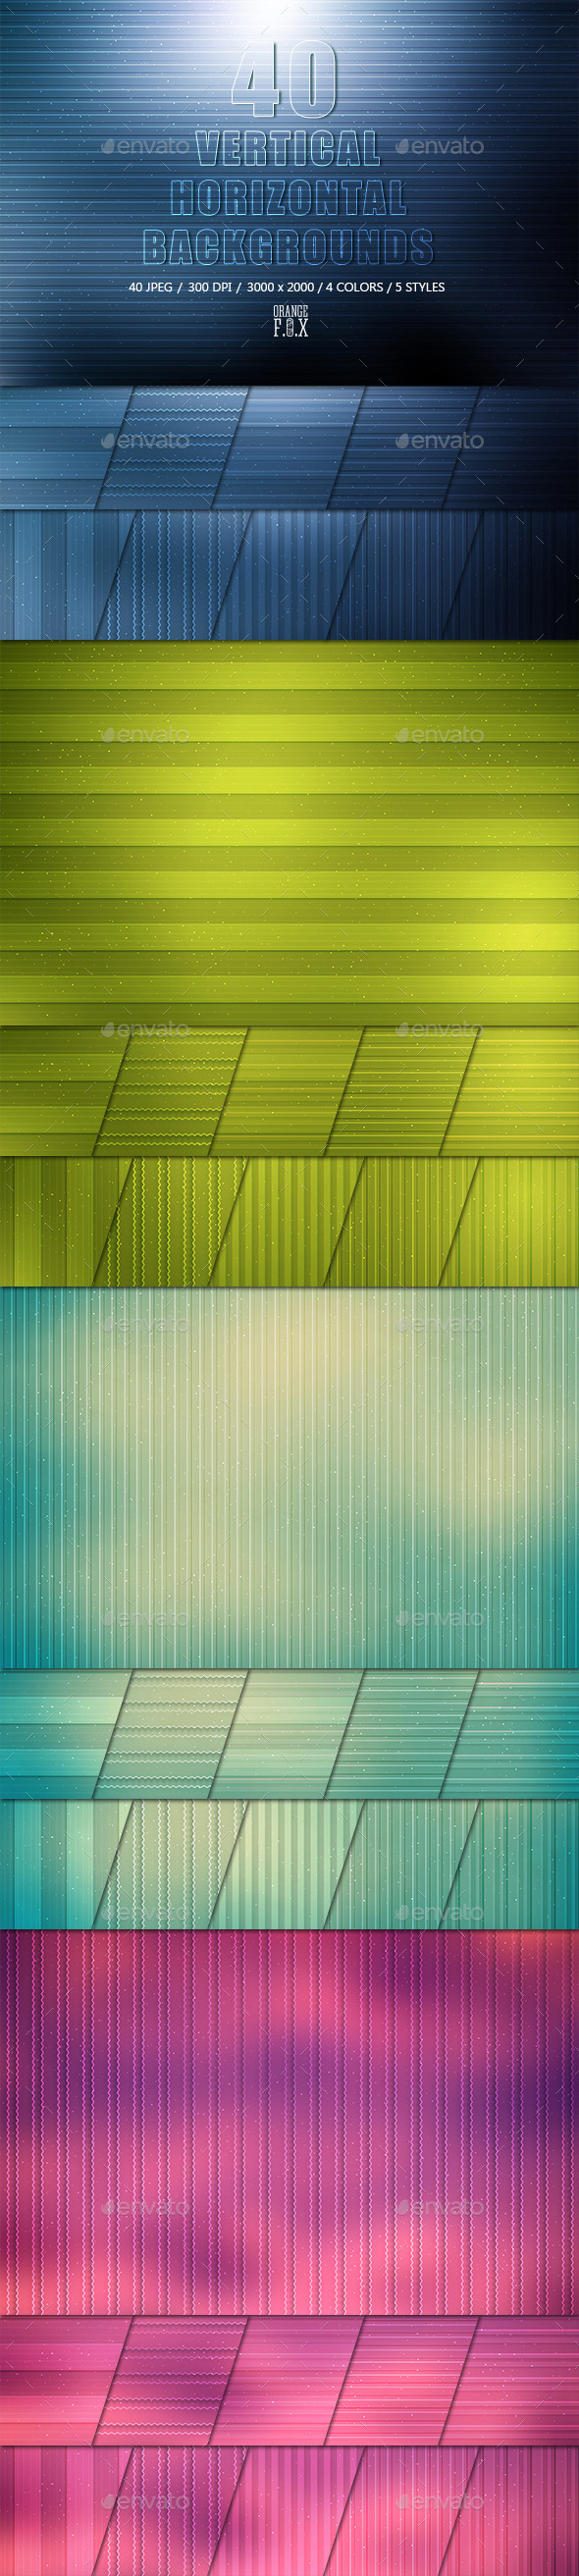 40 vertical and horizontal backgrounds_preview.jpg